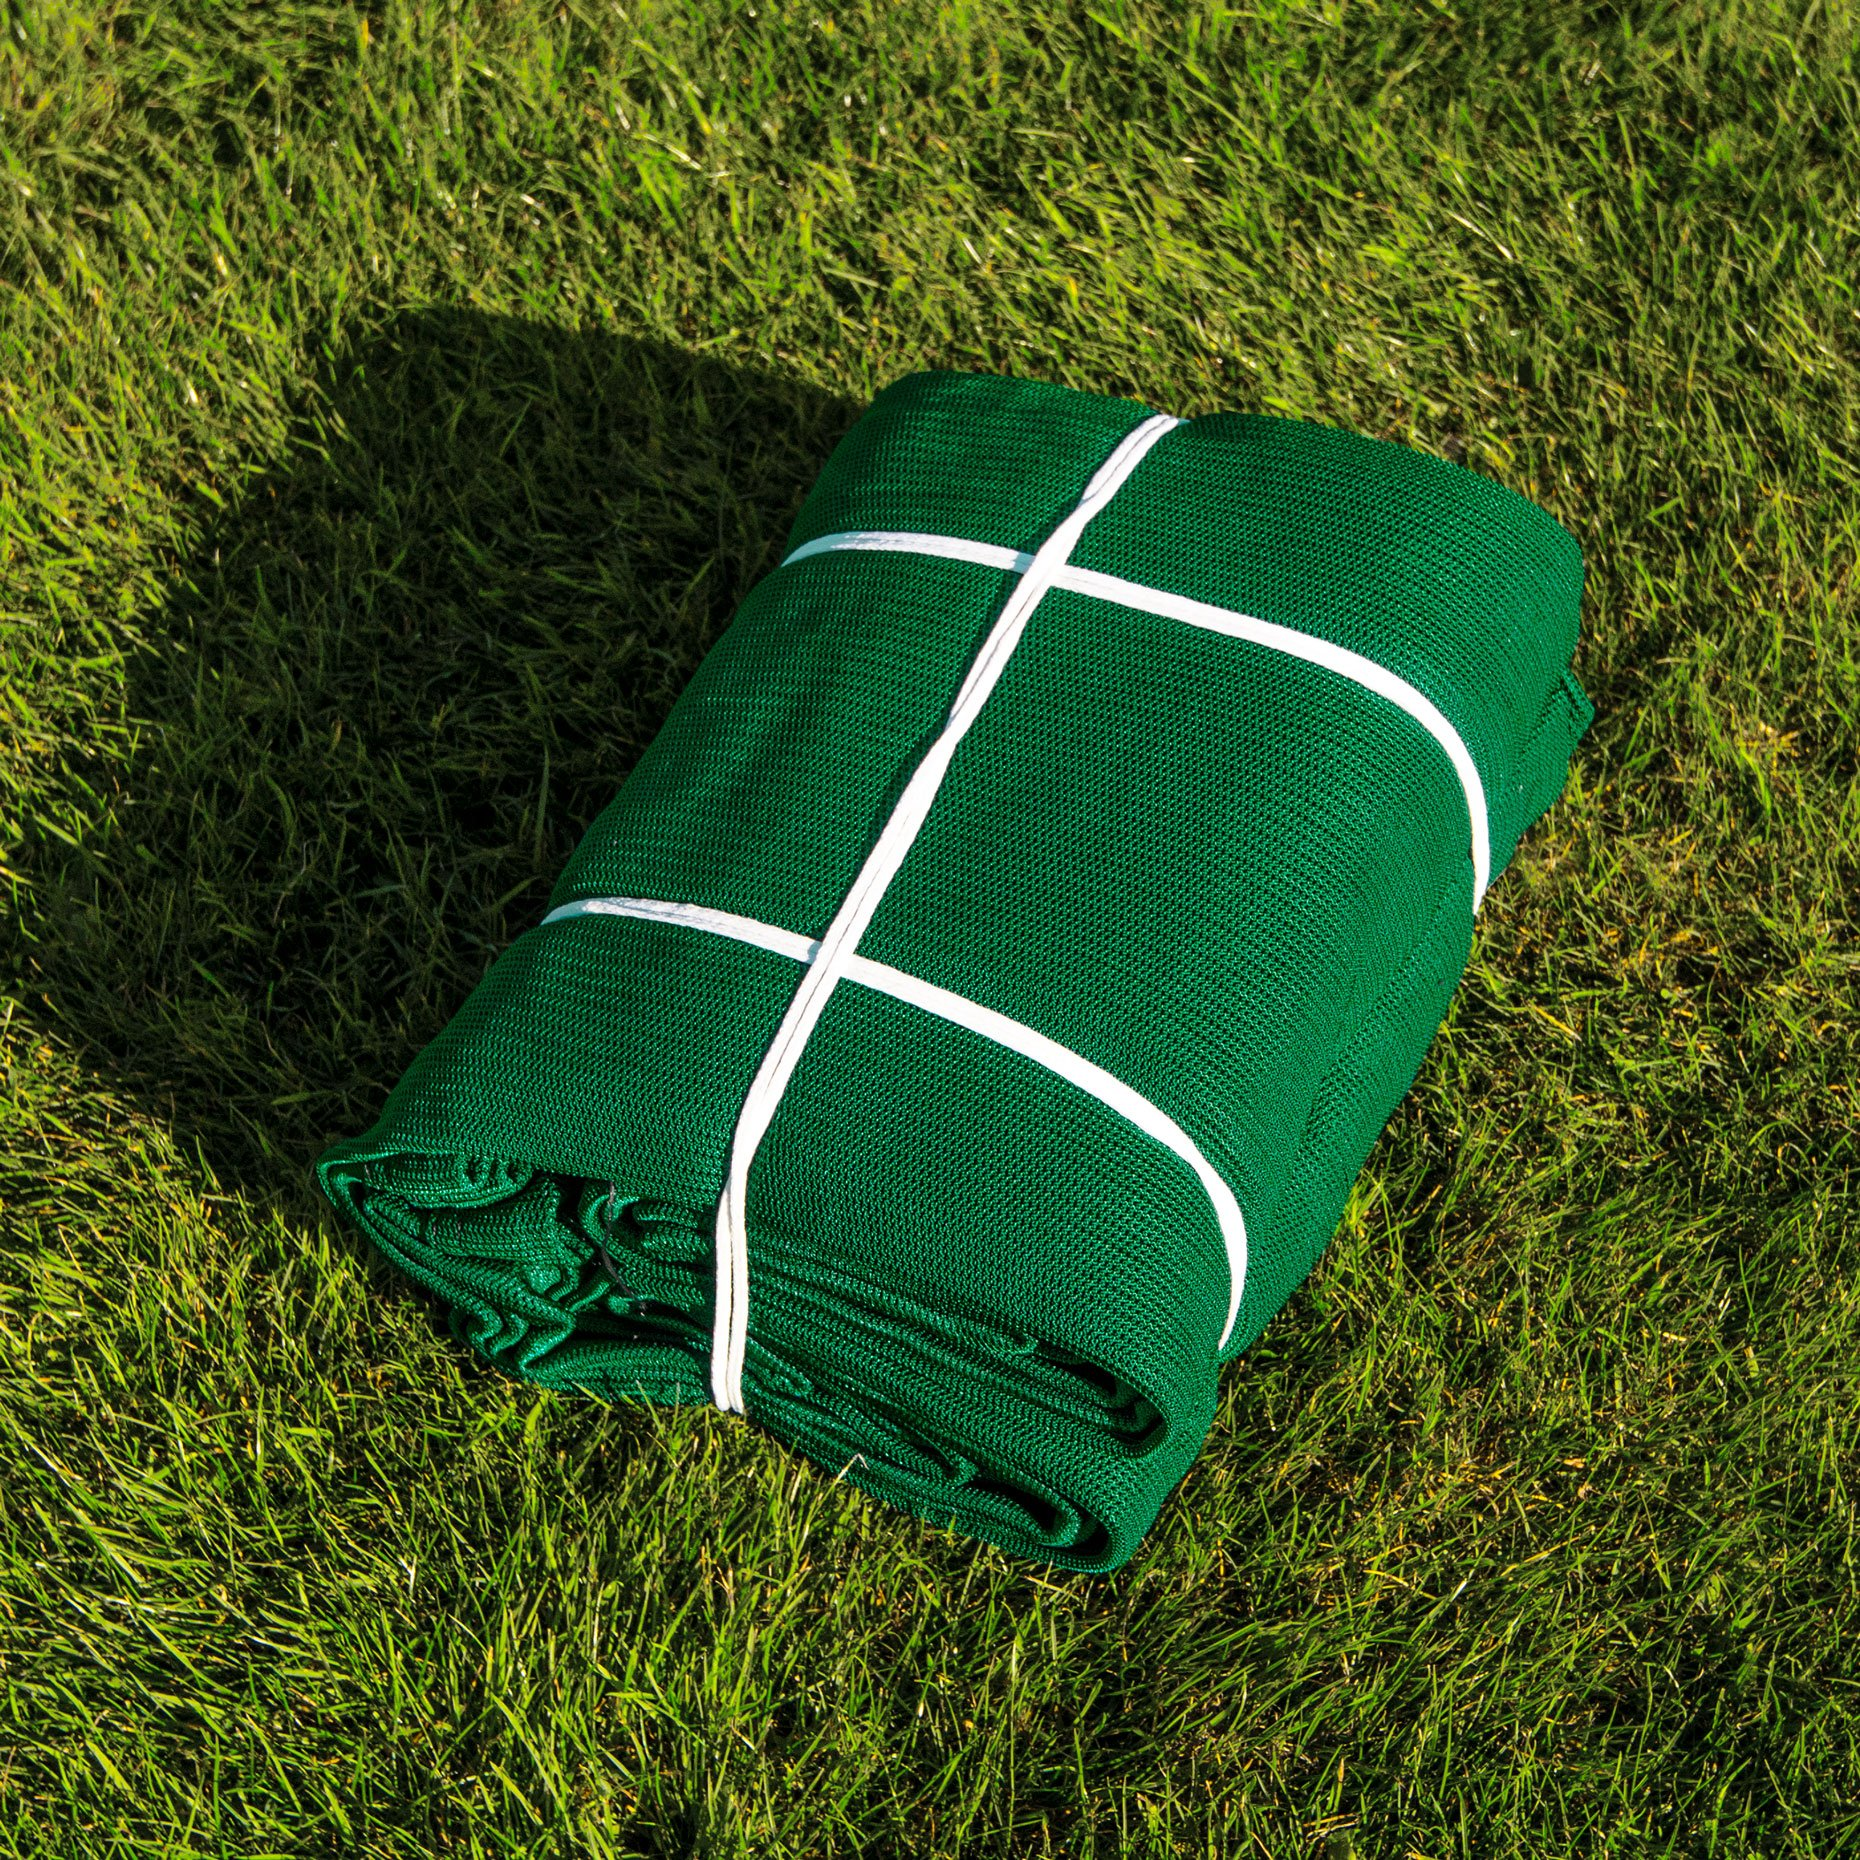 Replacement 10ft X 10ft Archery Grade Golf Impact Panel Netting (Green) – Super Strong Nets Guaranteed To Protect Your Golf Practice Cage From Damage [Net World Sports] by Net World Sports (Image #4)